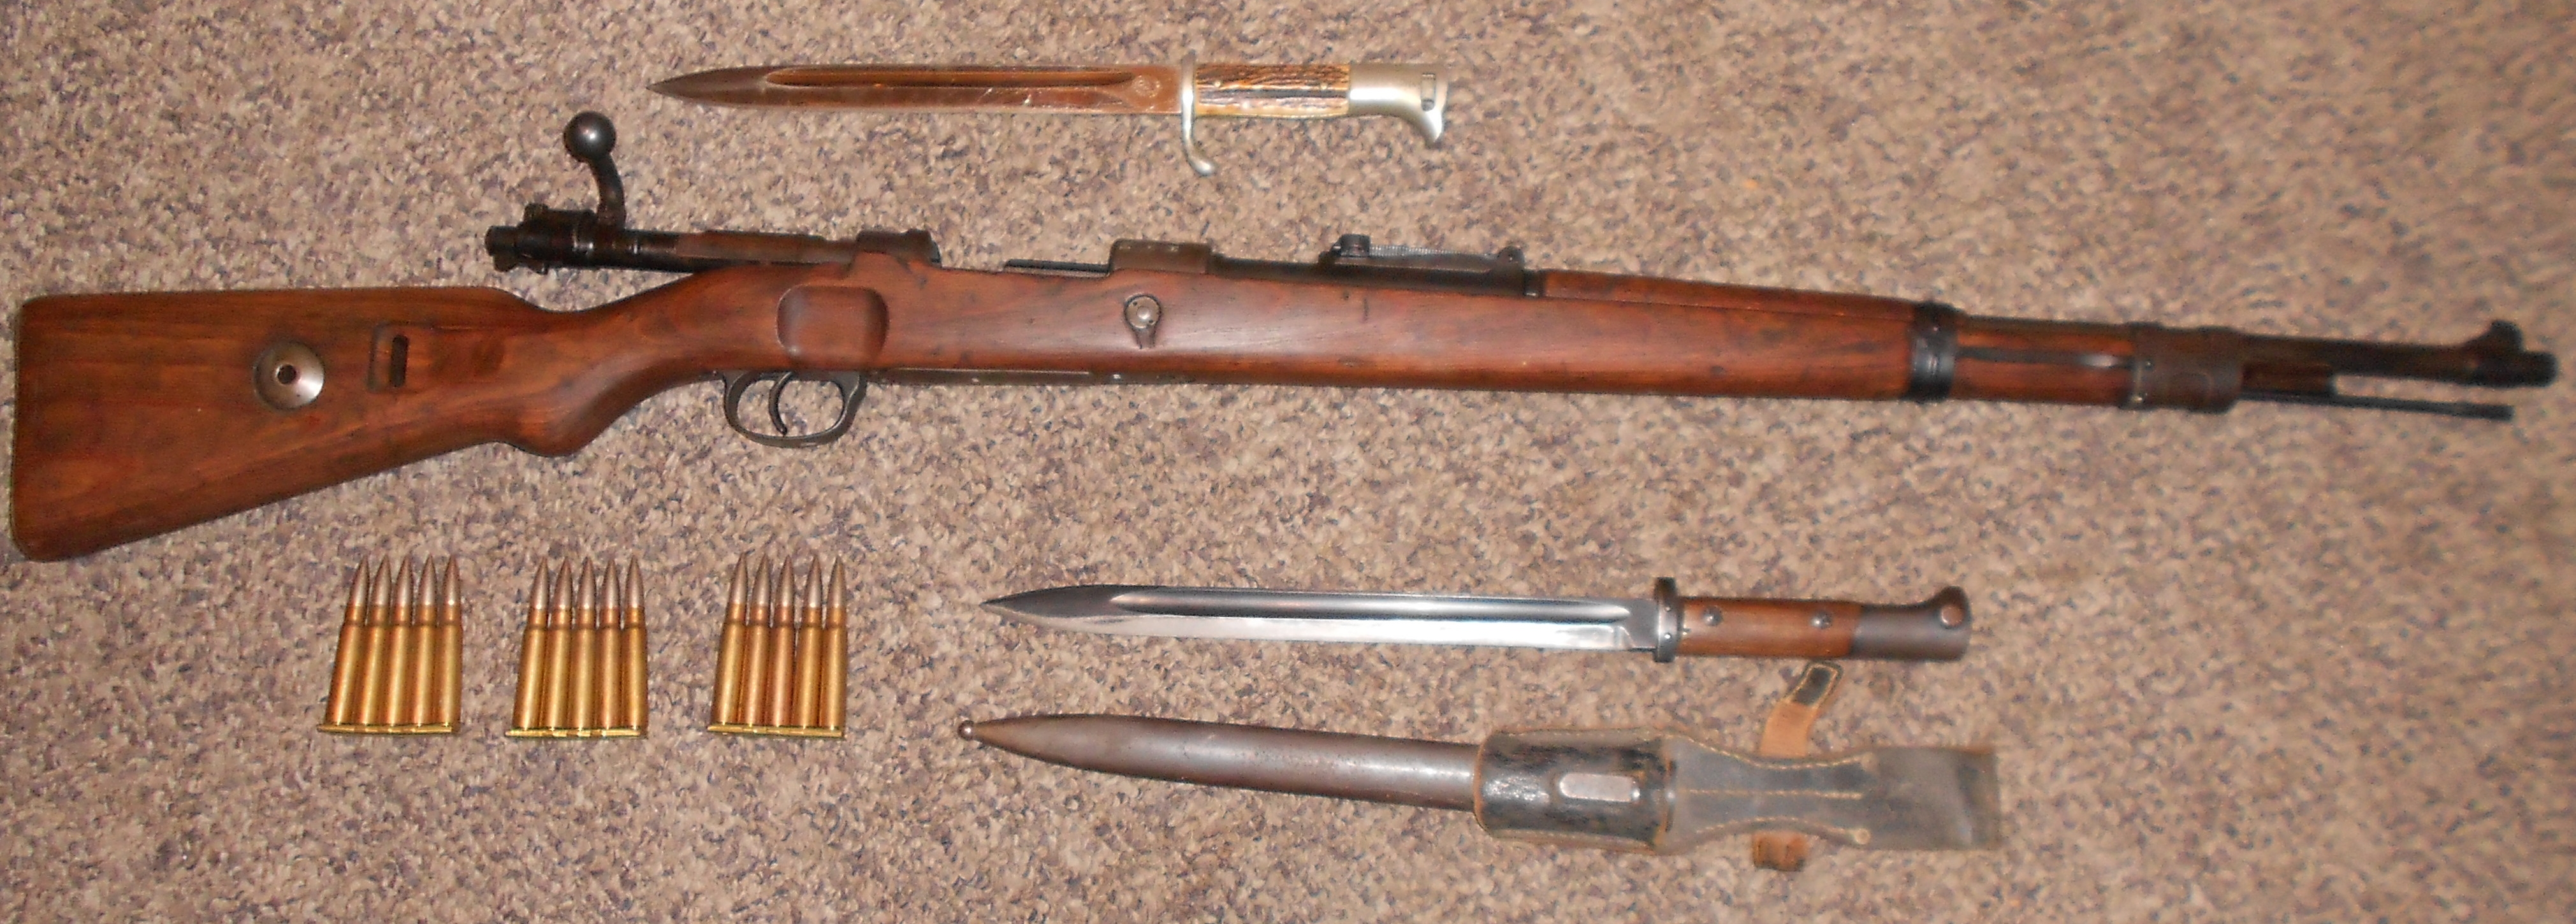 Surplus Rifles Pt.4 K98 German Mauser Review